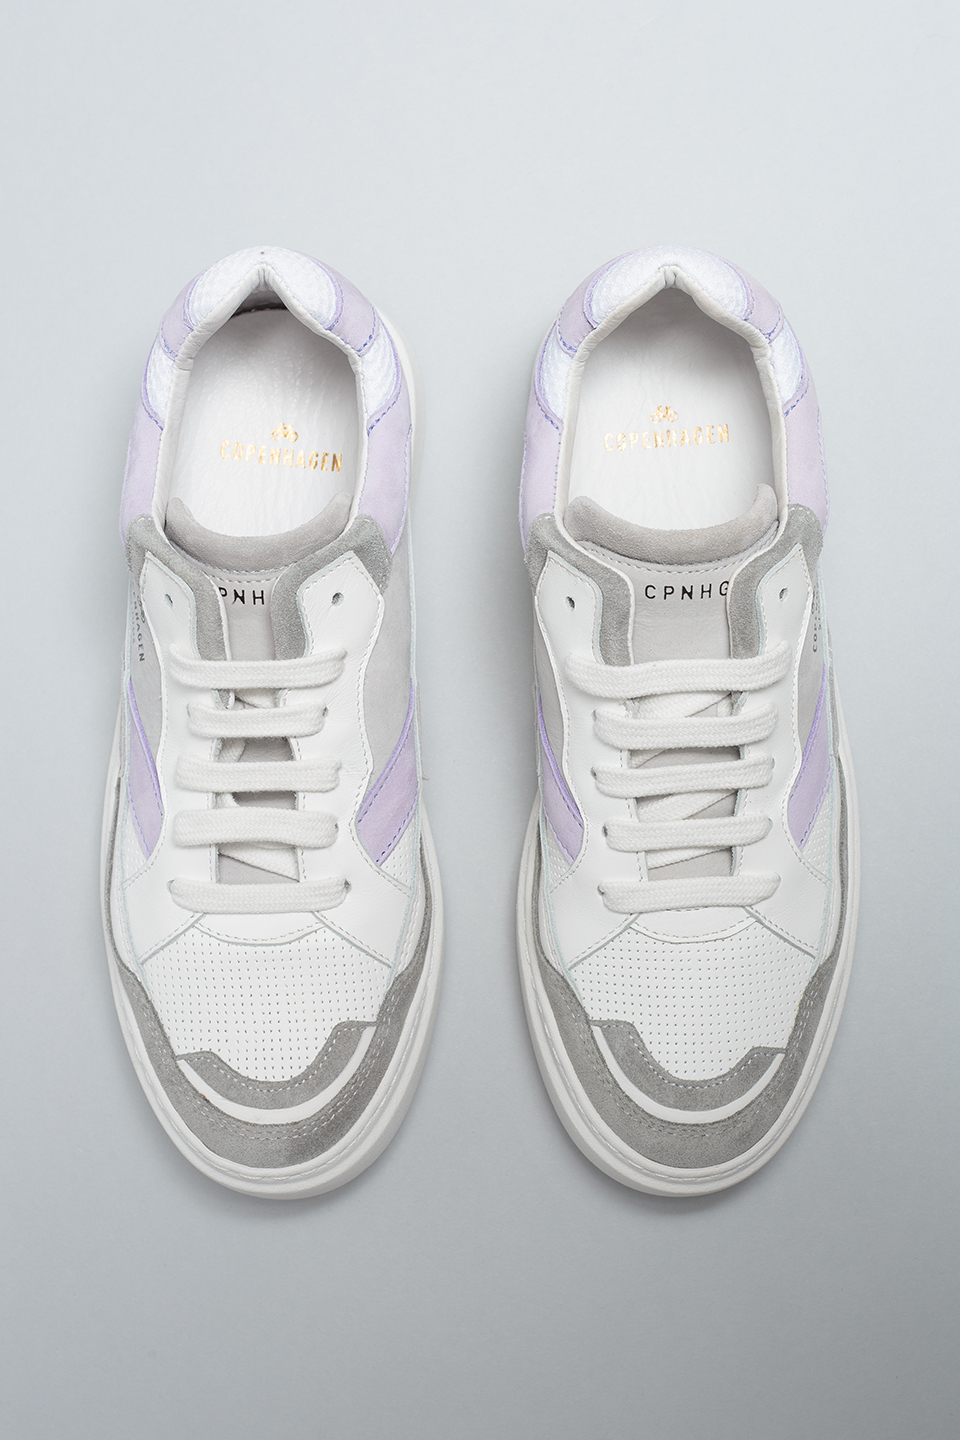 CPH560 material mix white/lavender - alternative 3